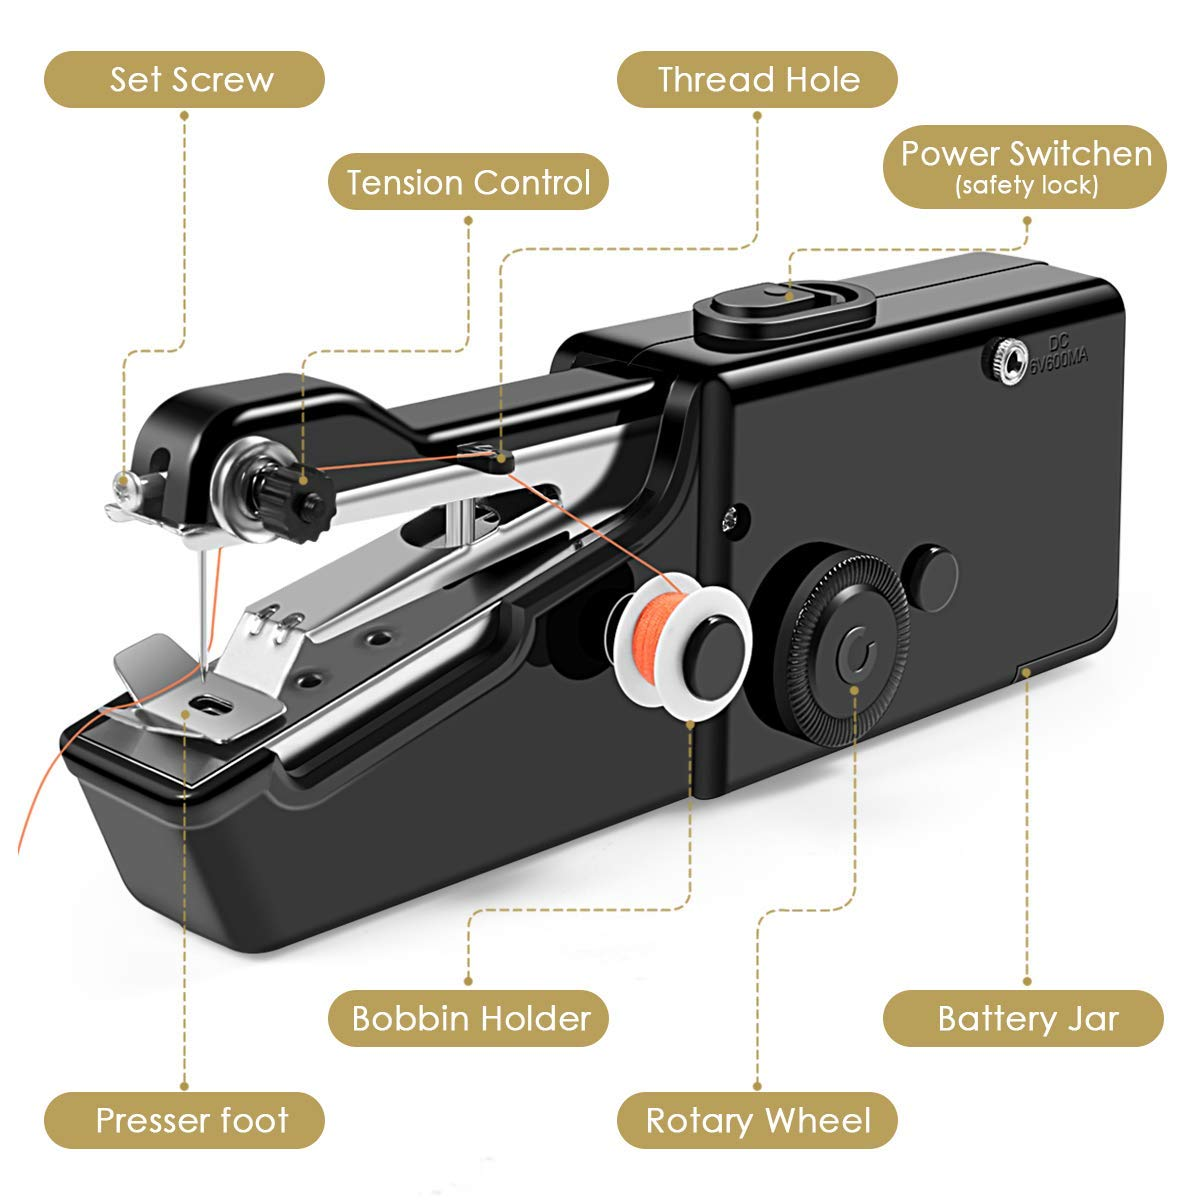 Handheld Sewing Machine Cordless Handheld Electric Sewing Machine Quick Handy Stitch for Home or Travel